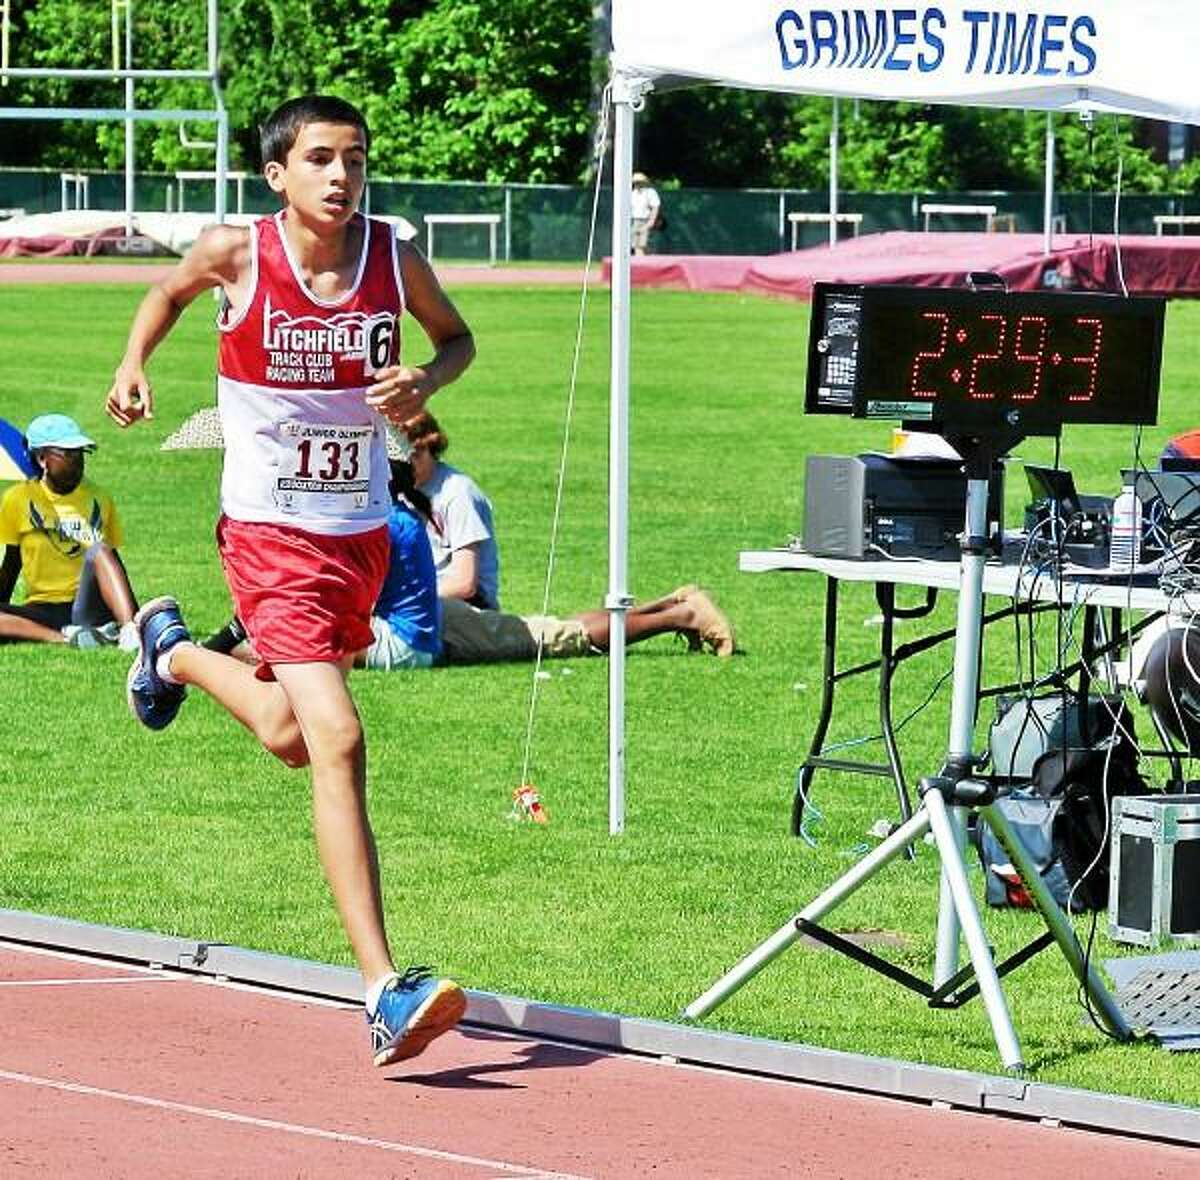 Mateo Tiul of Litchfield placed first in the 13-14 4x8 relay, fourth in the 800m and fifth in the 1500m. Submitted Photo